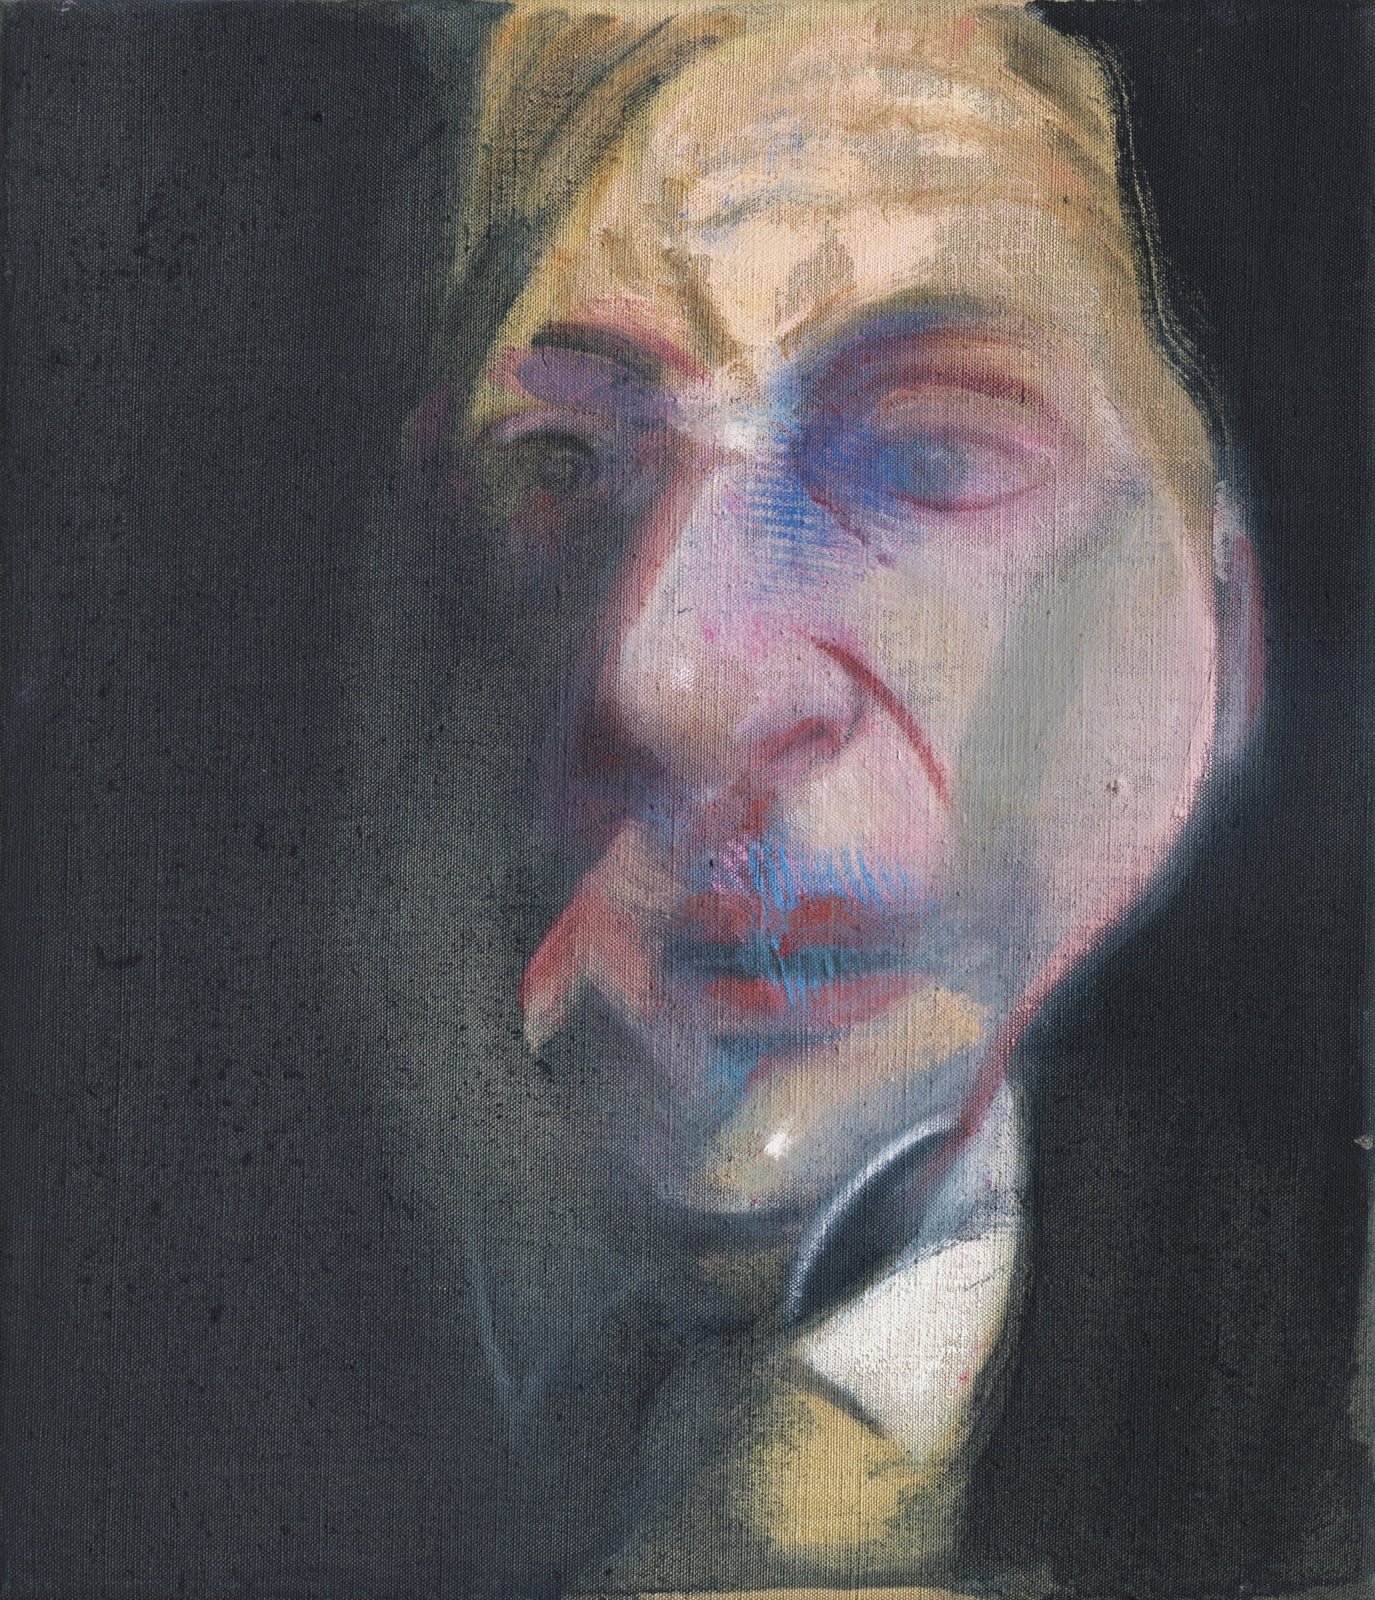 Francis Bacon Study for Self Portrait 1979 oil on canvas 14 x 12 inches 35.6 x 30.5 cm More Info